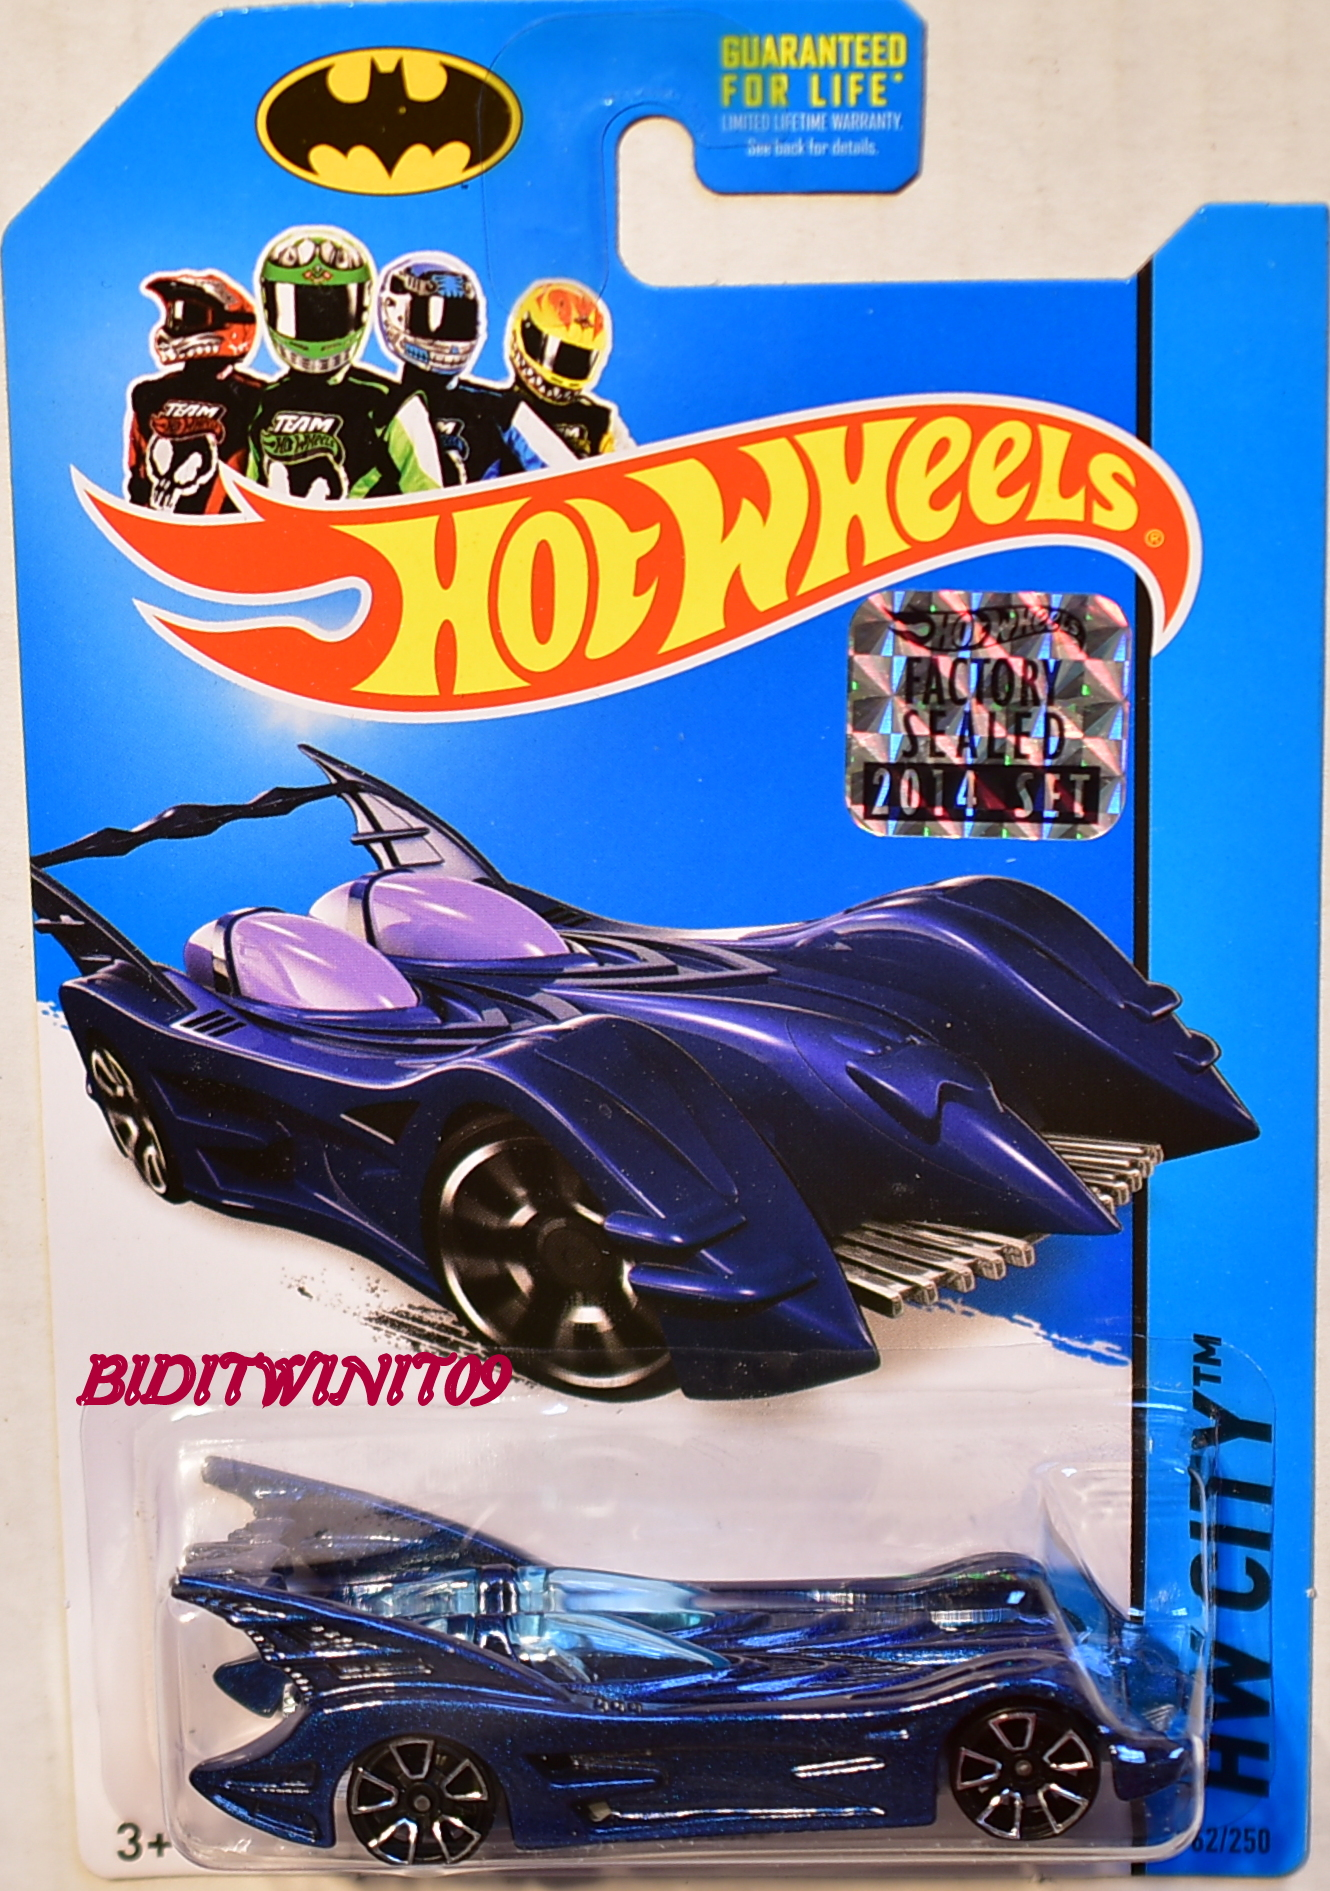 HOT WHEELS 2014 HW CITY BATMOBILE BLUE FACTORY SEALED